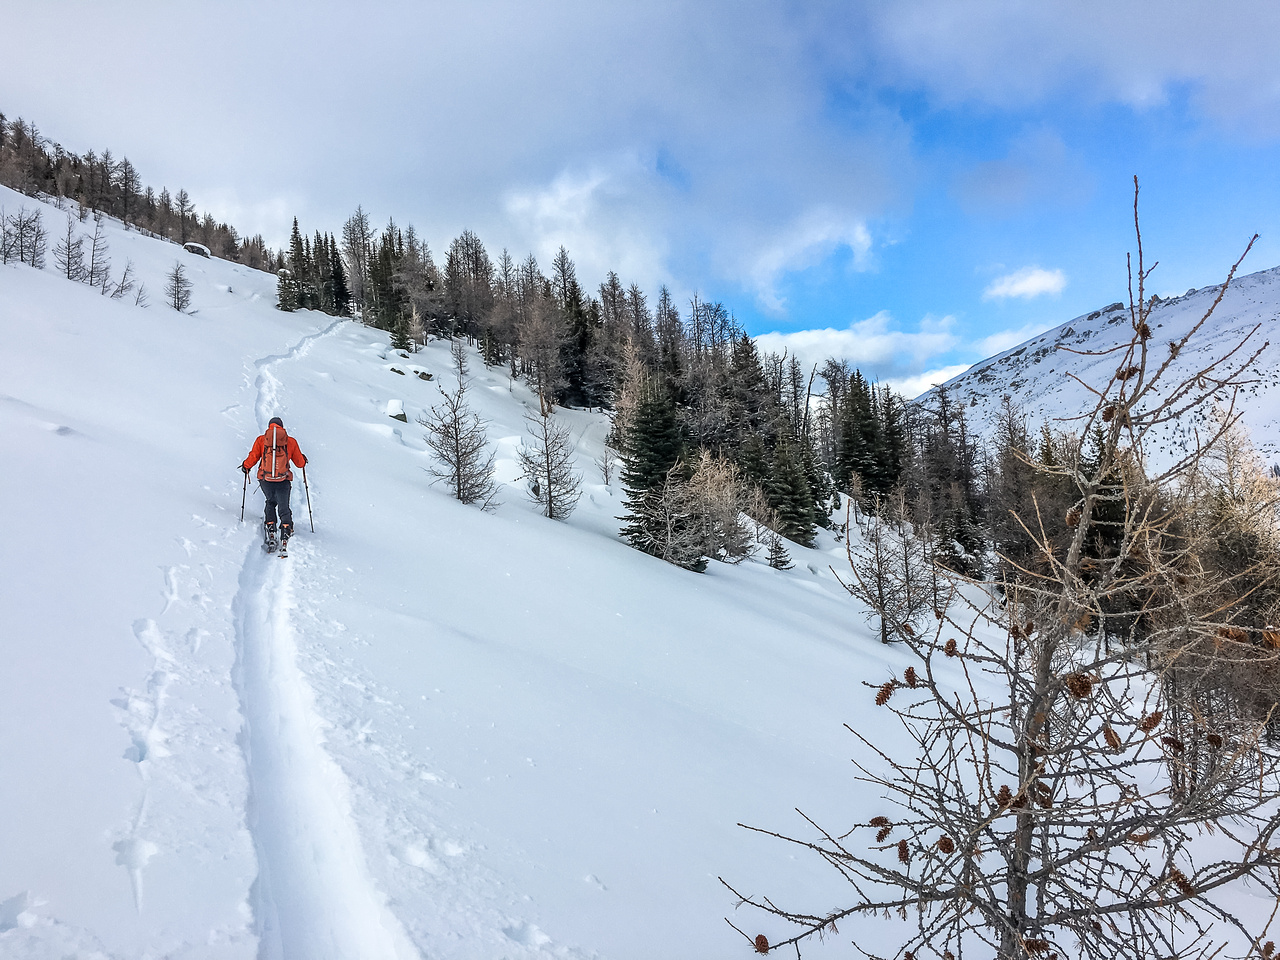 We found some old ski tracks on this slope - probably from a Pumpkin Traverse. Our descent track worked great on return.